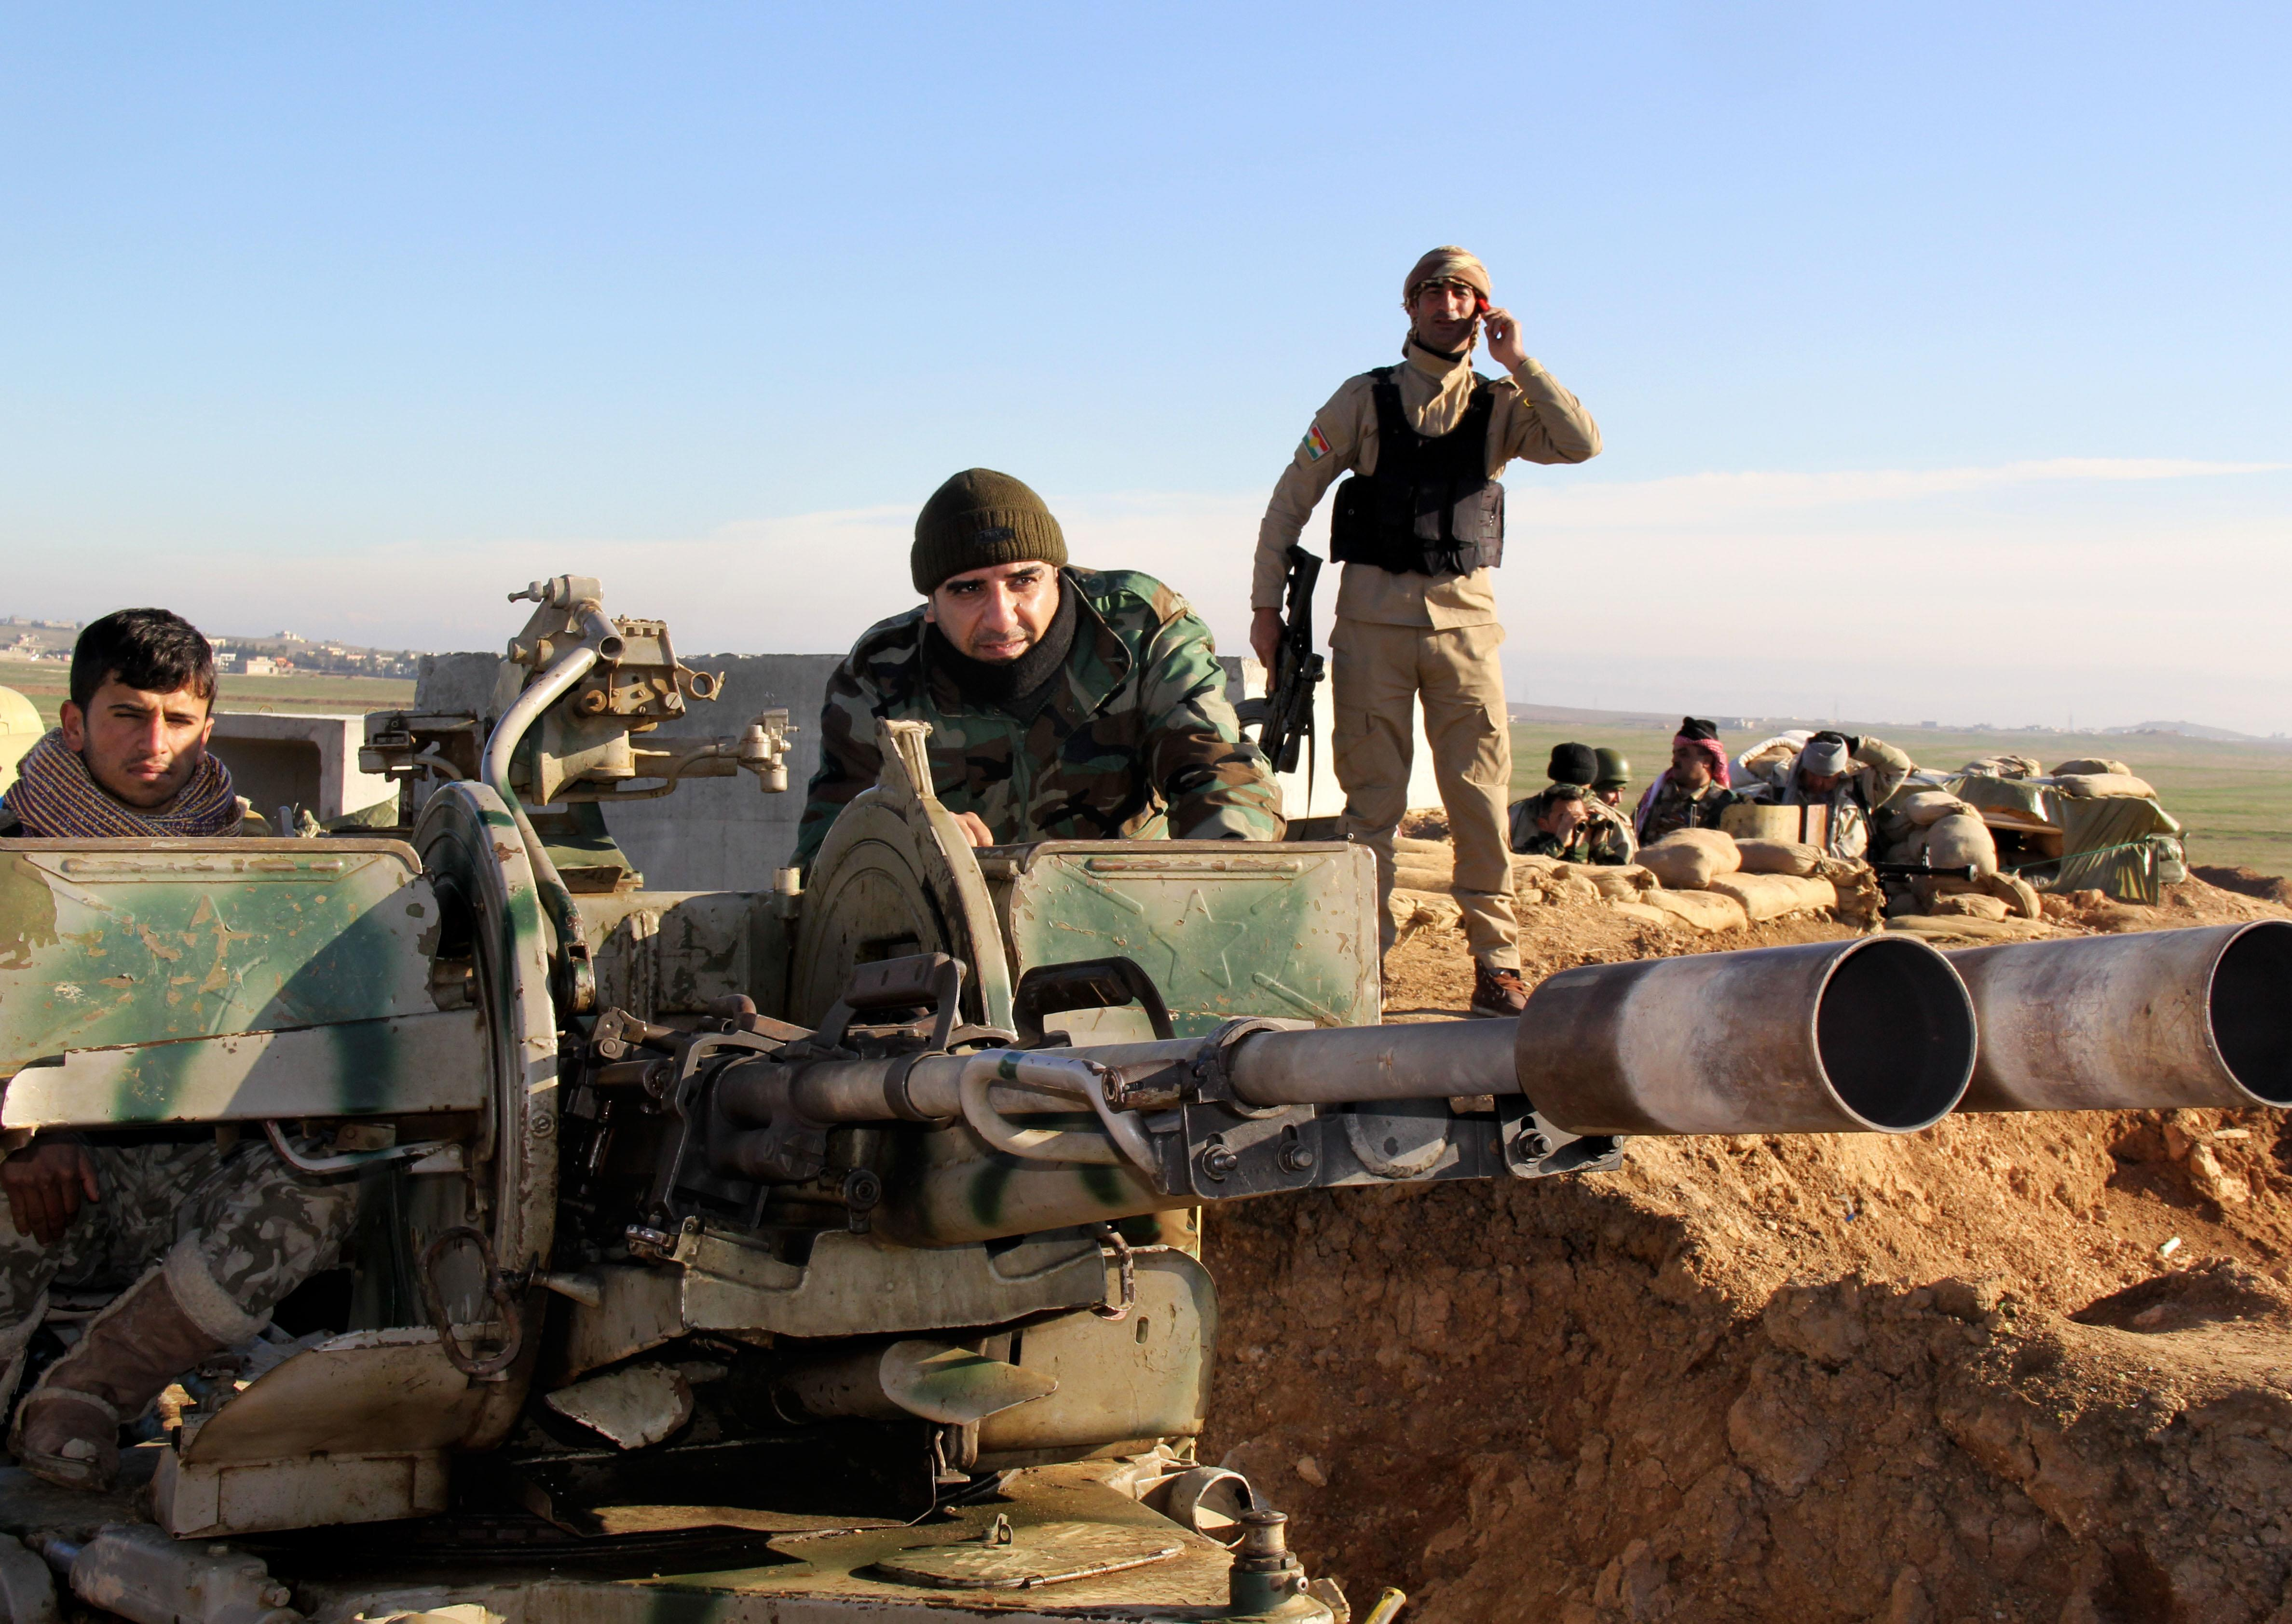 Mosul strikes are start of new effort against Islamic State